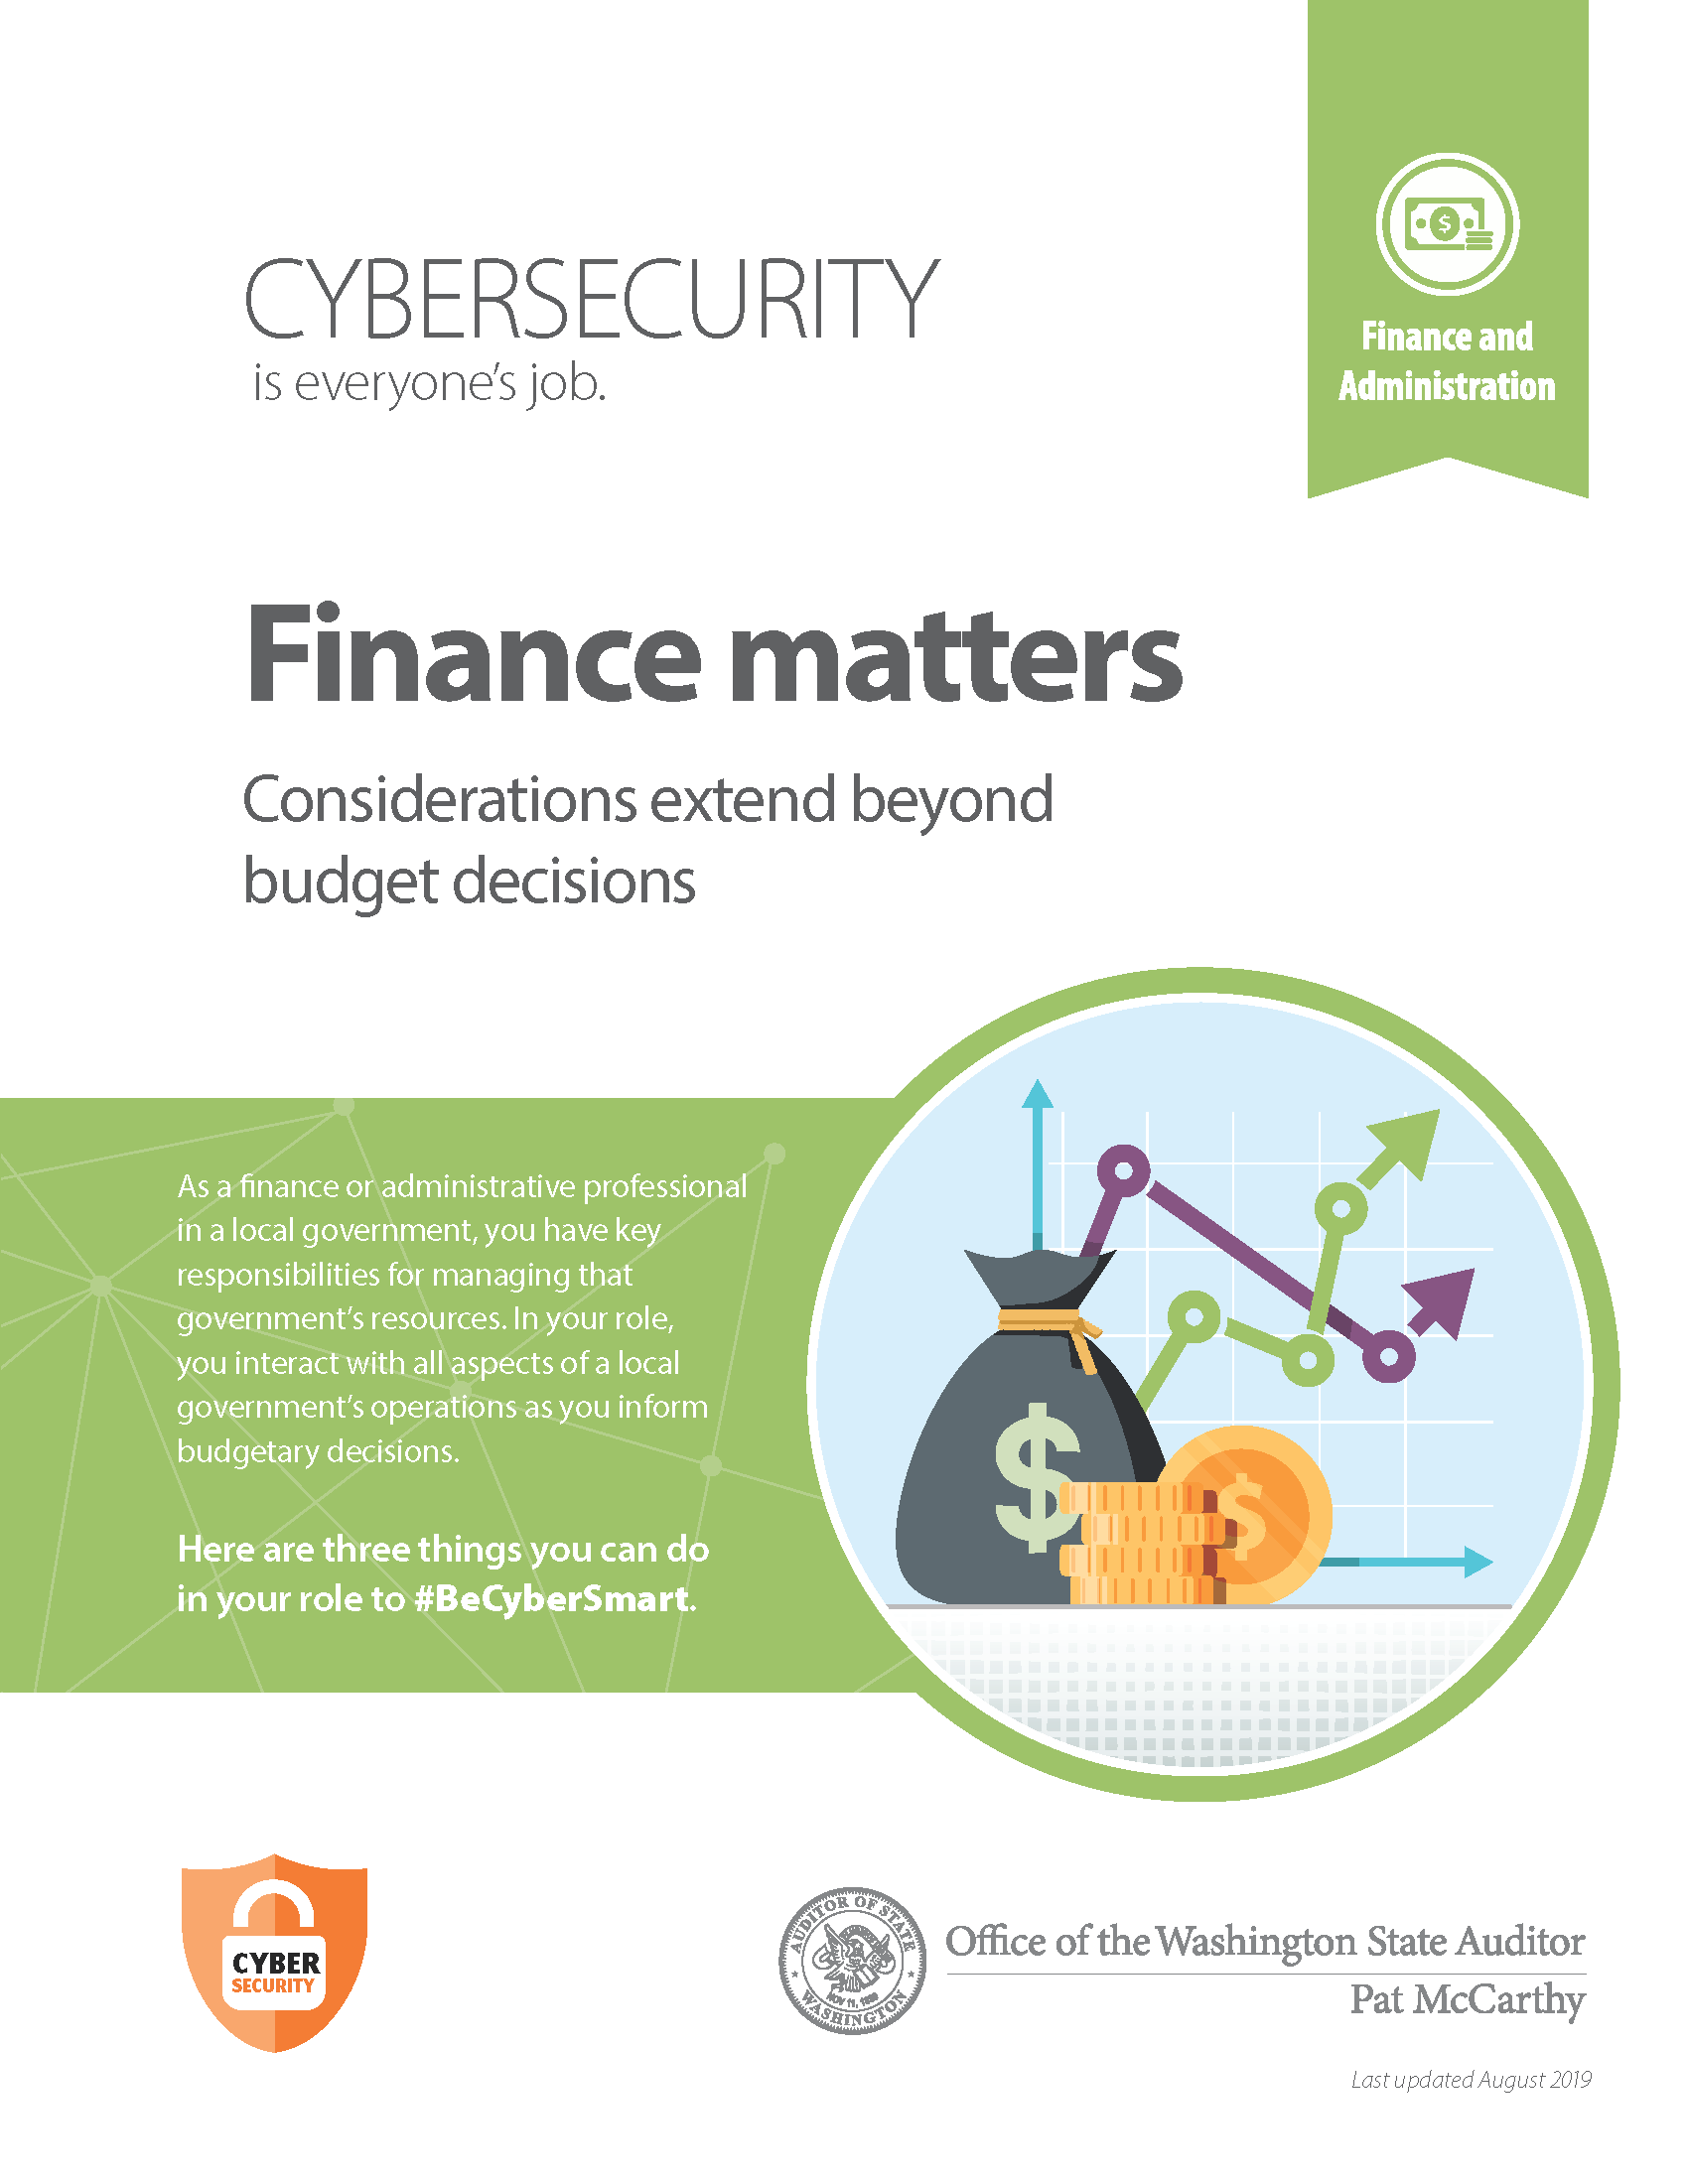 Cover of cybersecurity resource for finance and administration professionals in local government